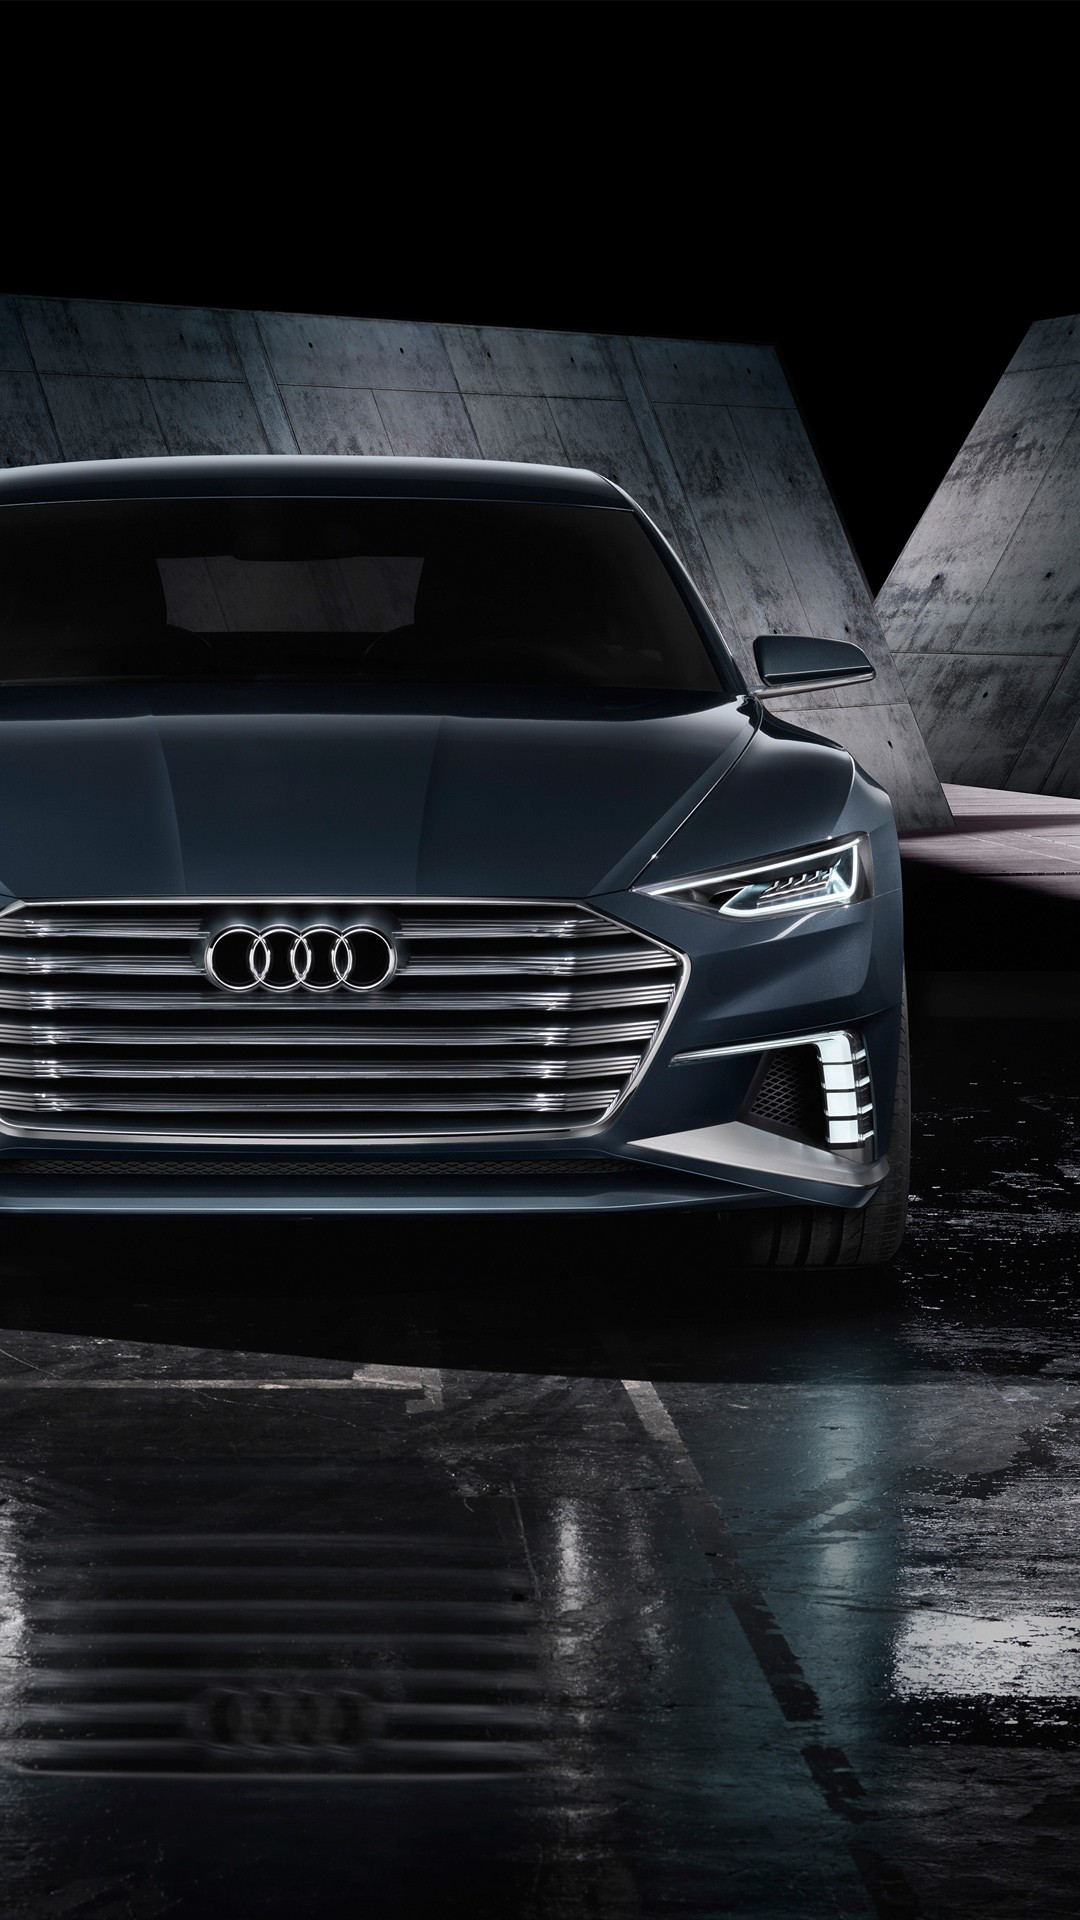 Pure And Original 2018 Audi A8 4k Wallpapers | Hd Wallpapers | Id #19646